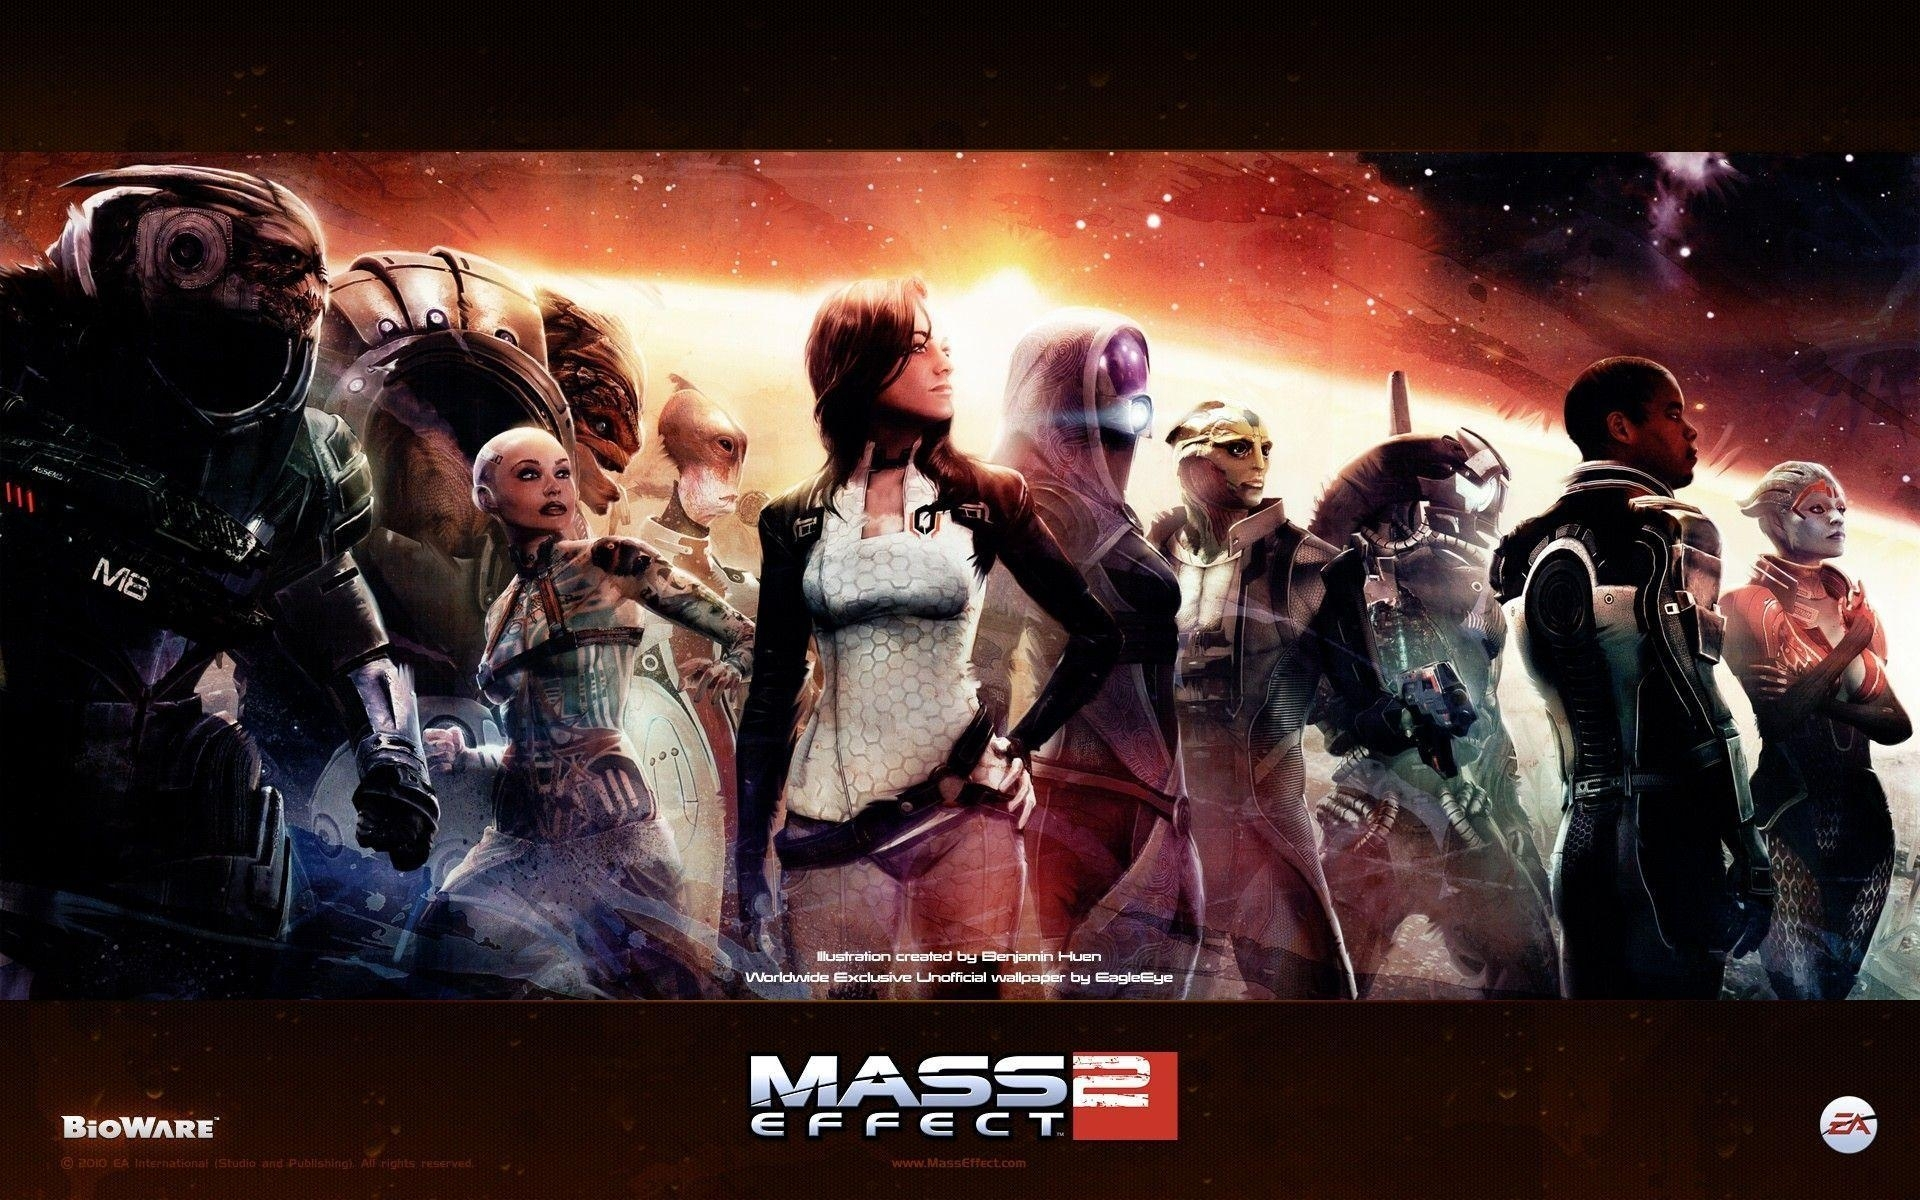 mass effect 2 wallpapers - wallpaper cave